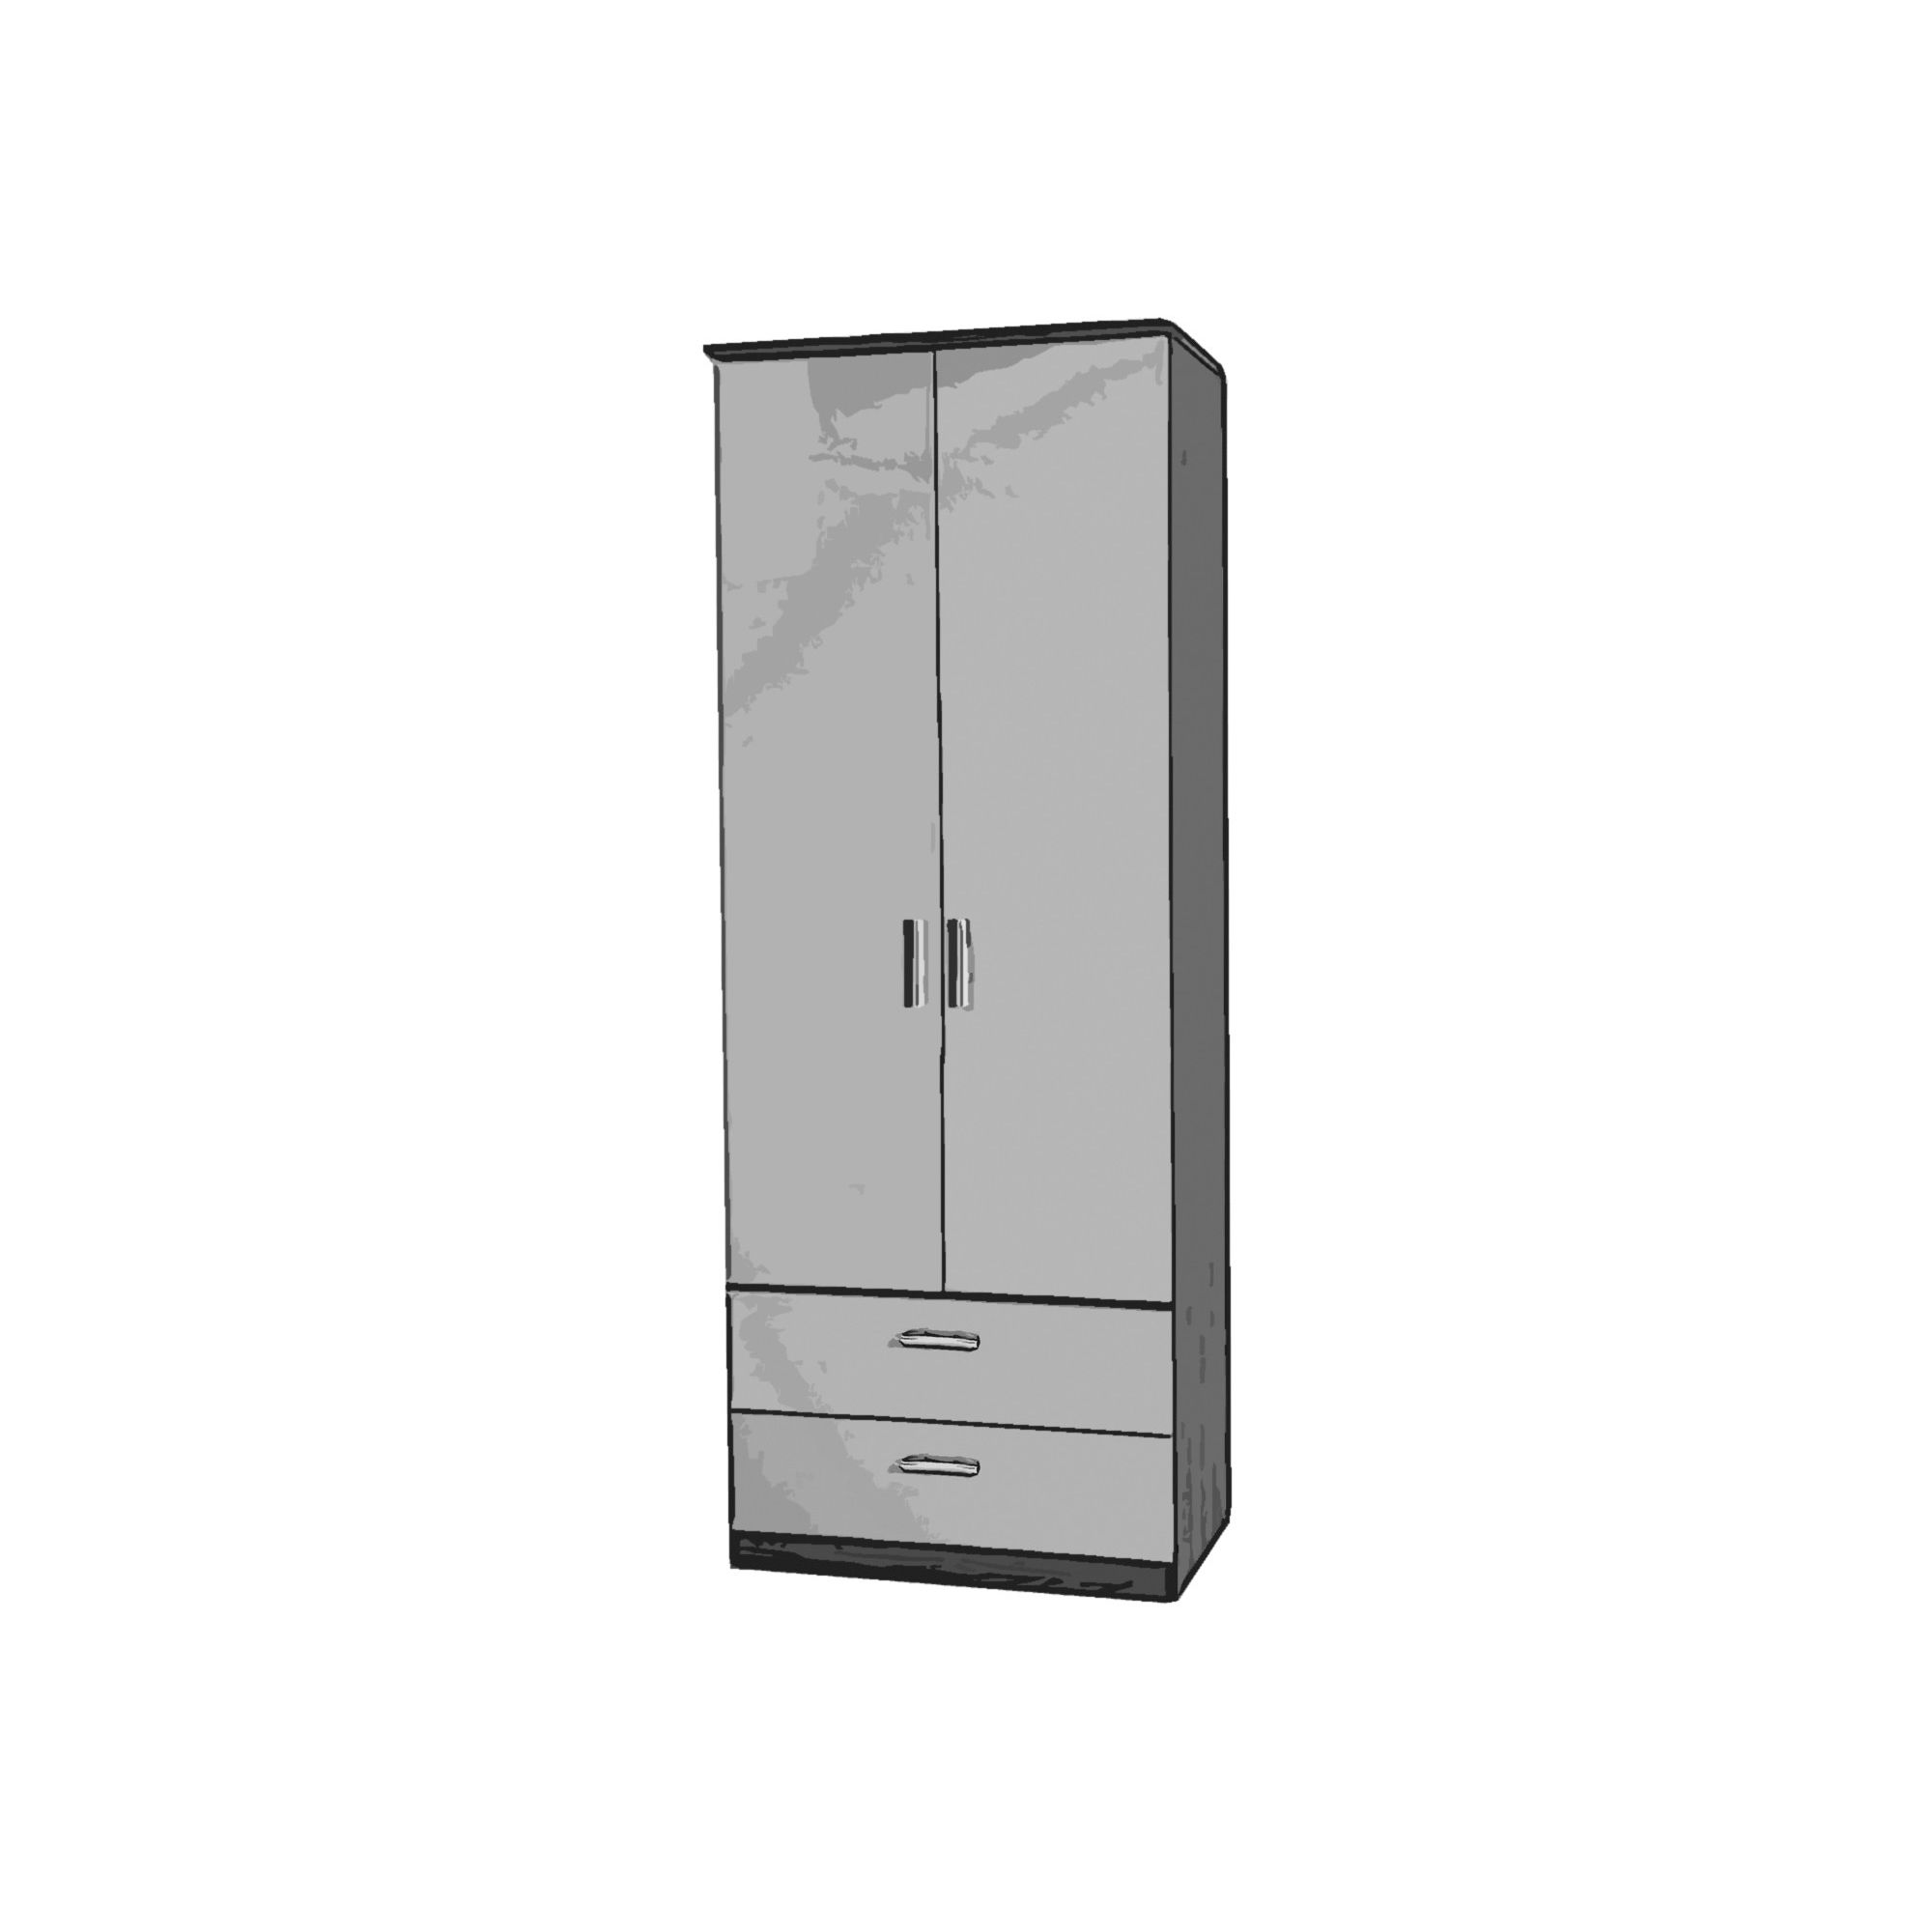 Welcome Furniture Mayfair Tall Wardrobe with 2 Drawers - Aubergine - Ebony - Cream at Tesco Direct